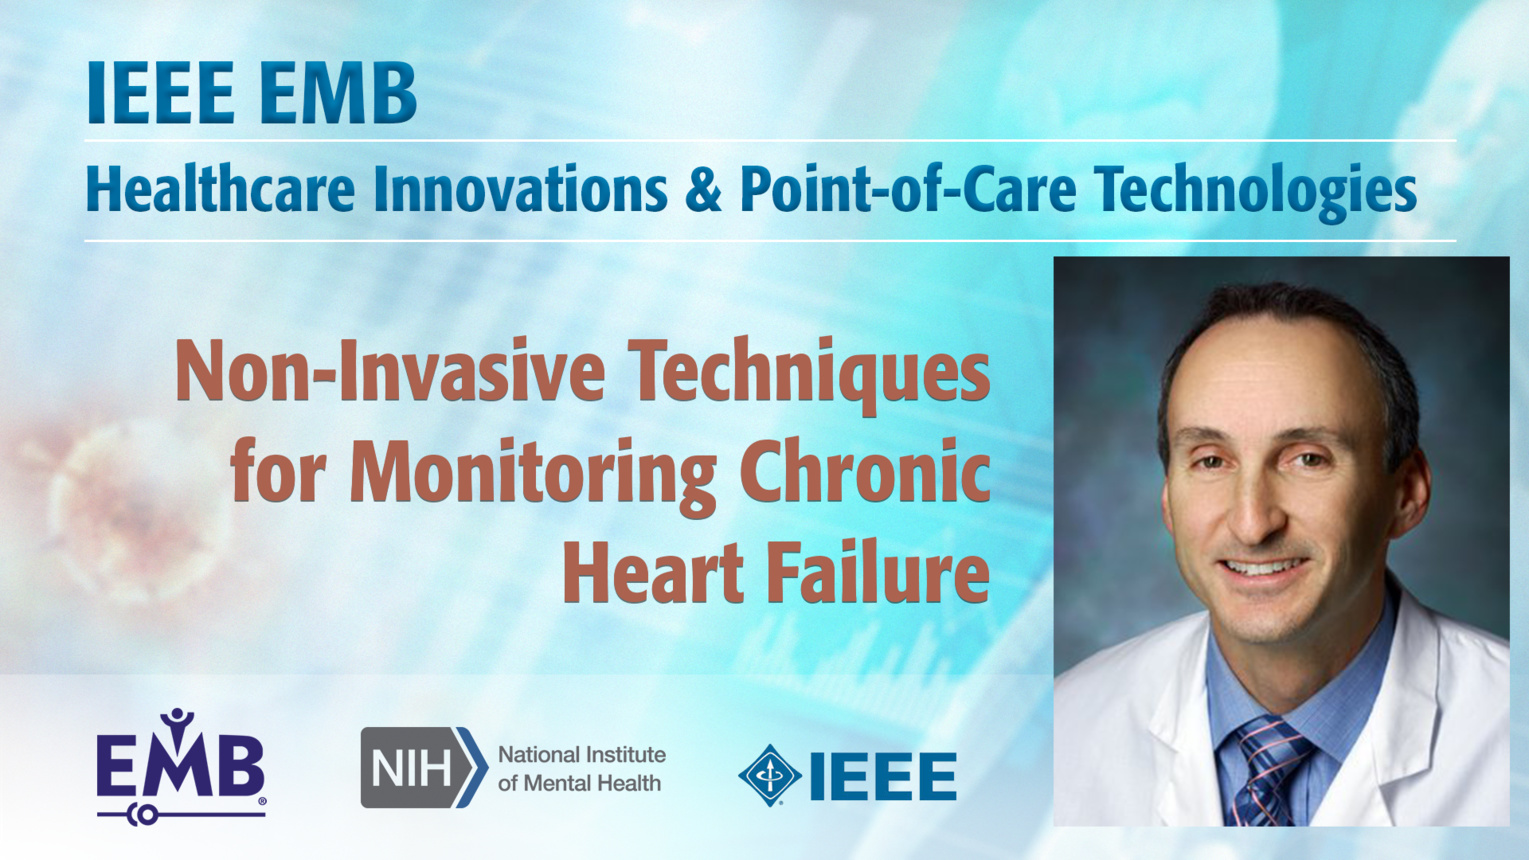 Non-Invasive Techniques for Monitoring Chronic Heart Failure - Harry Silber - IEEE EMBS at NIH, 2019